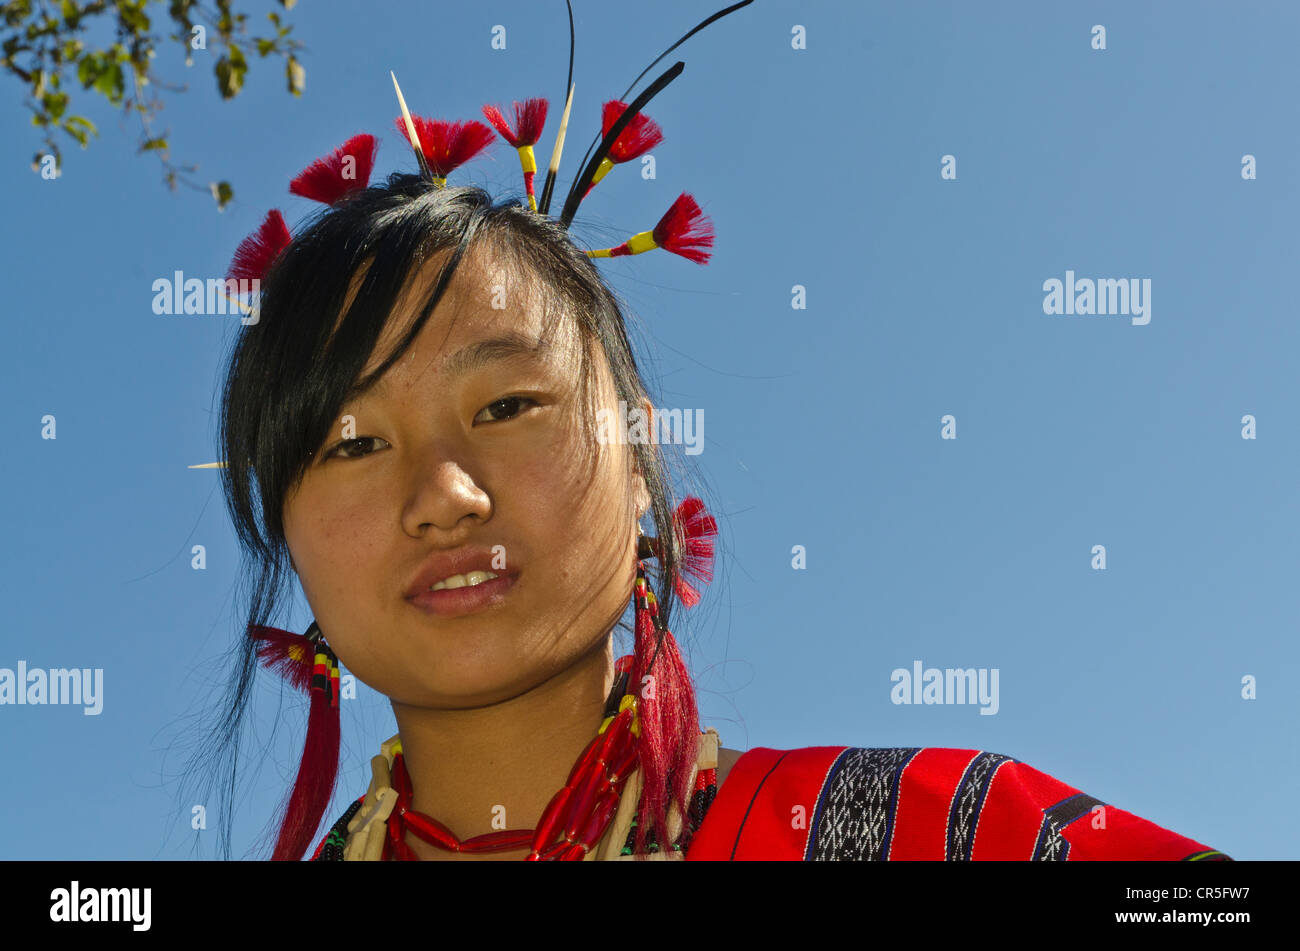 Woman of the Lotha tribe with traditional headdress at the annual Hornbill Festival, Kohima, Nagaland, India, Asia Stock Photo